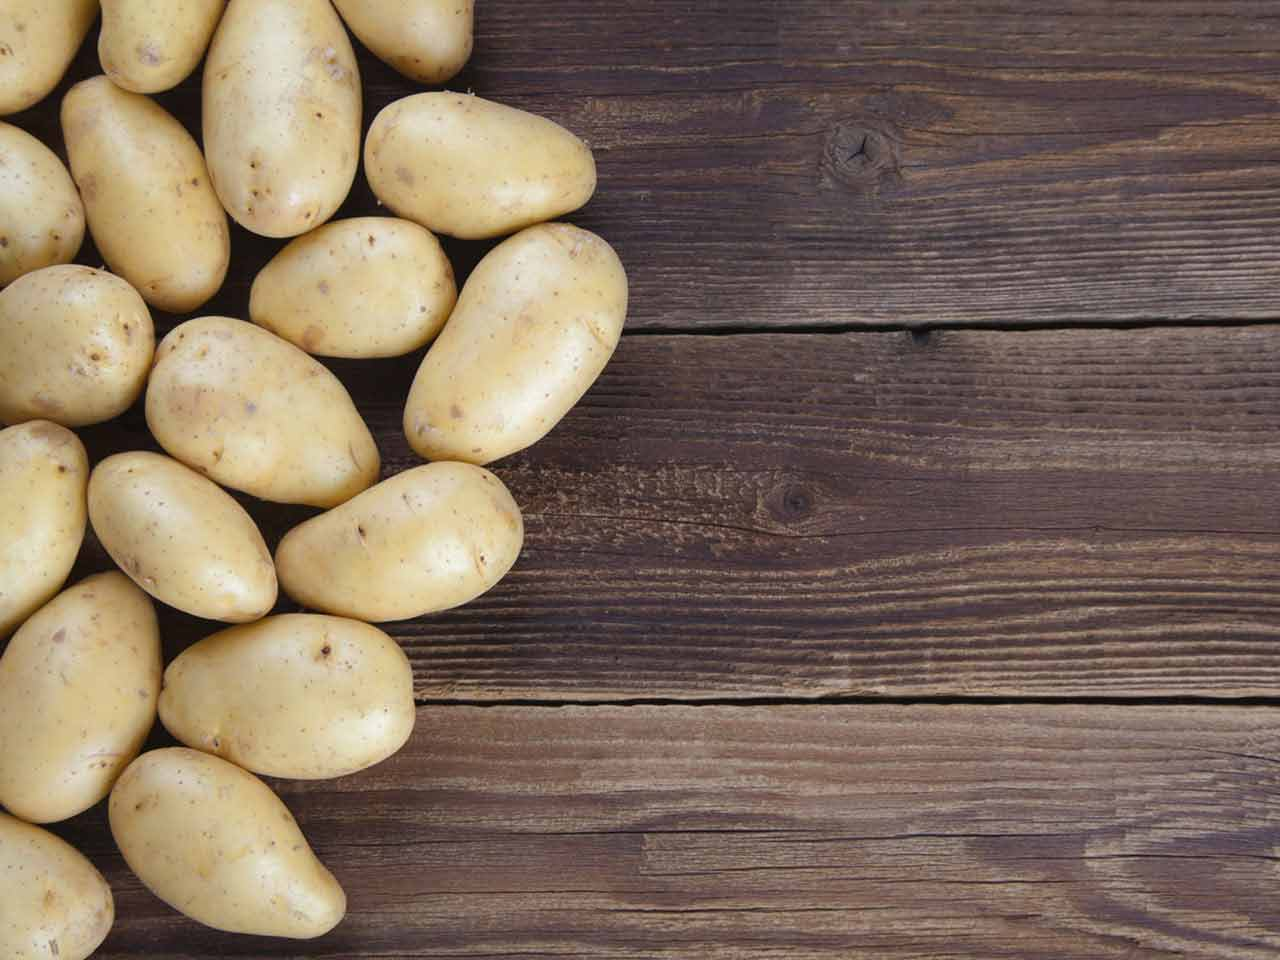 Potatos on  a wooden preparation board